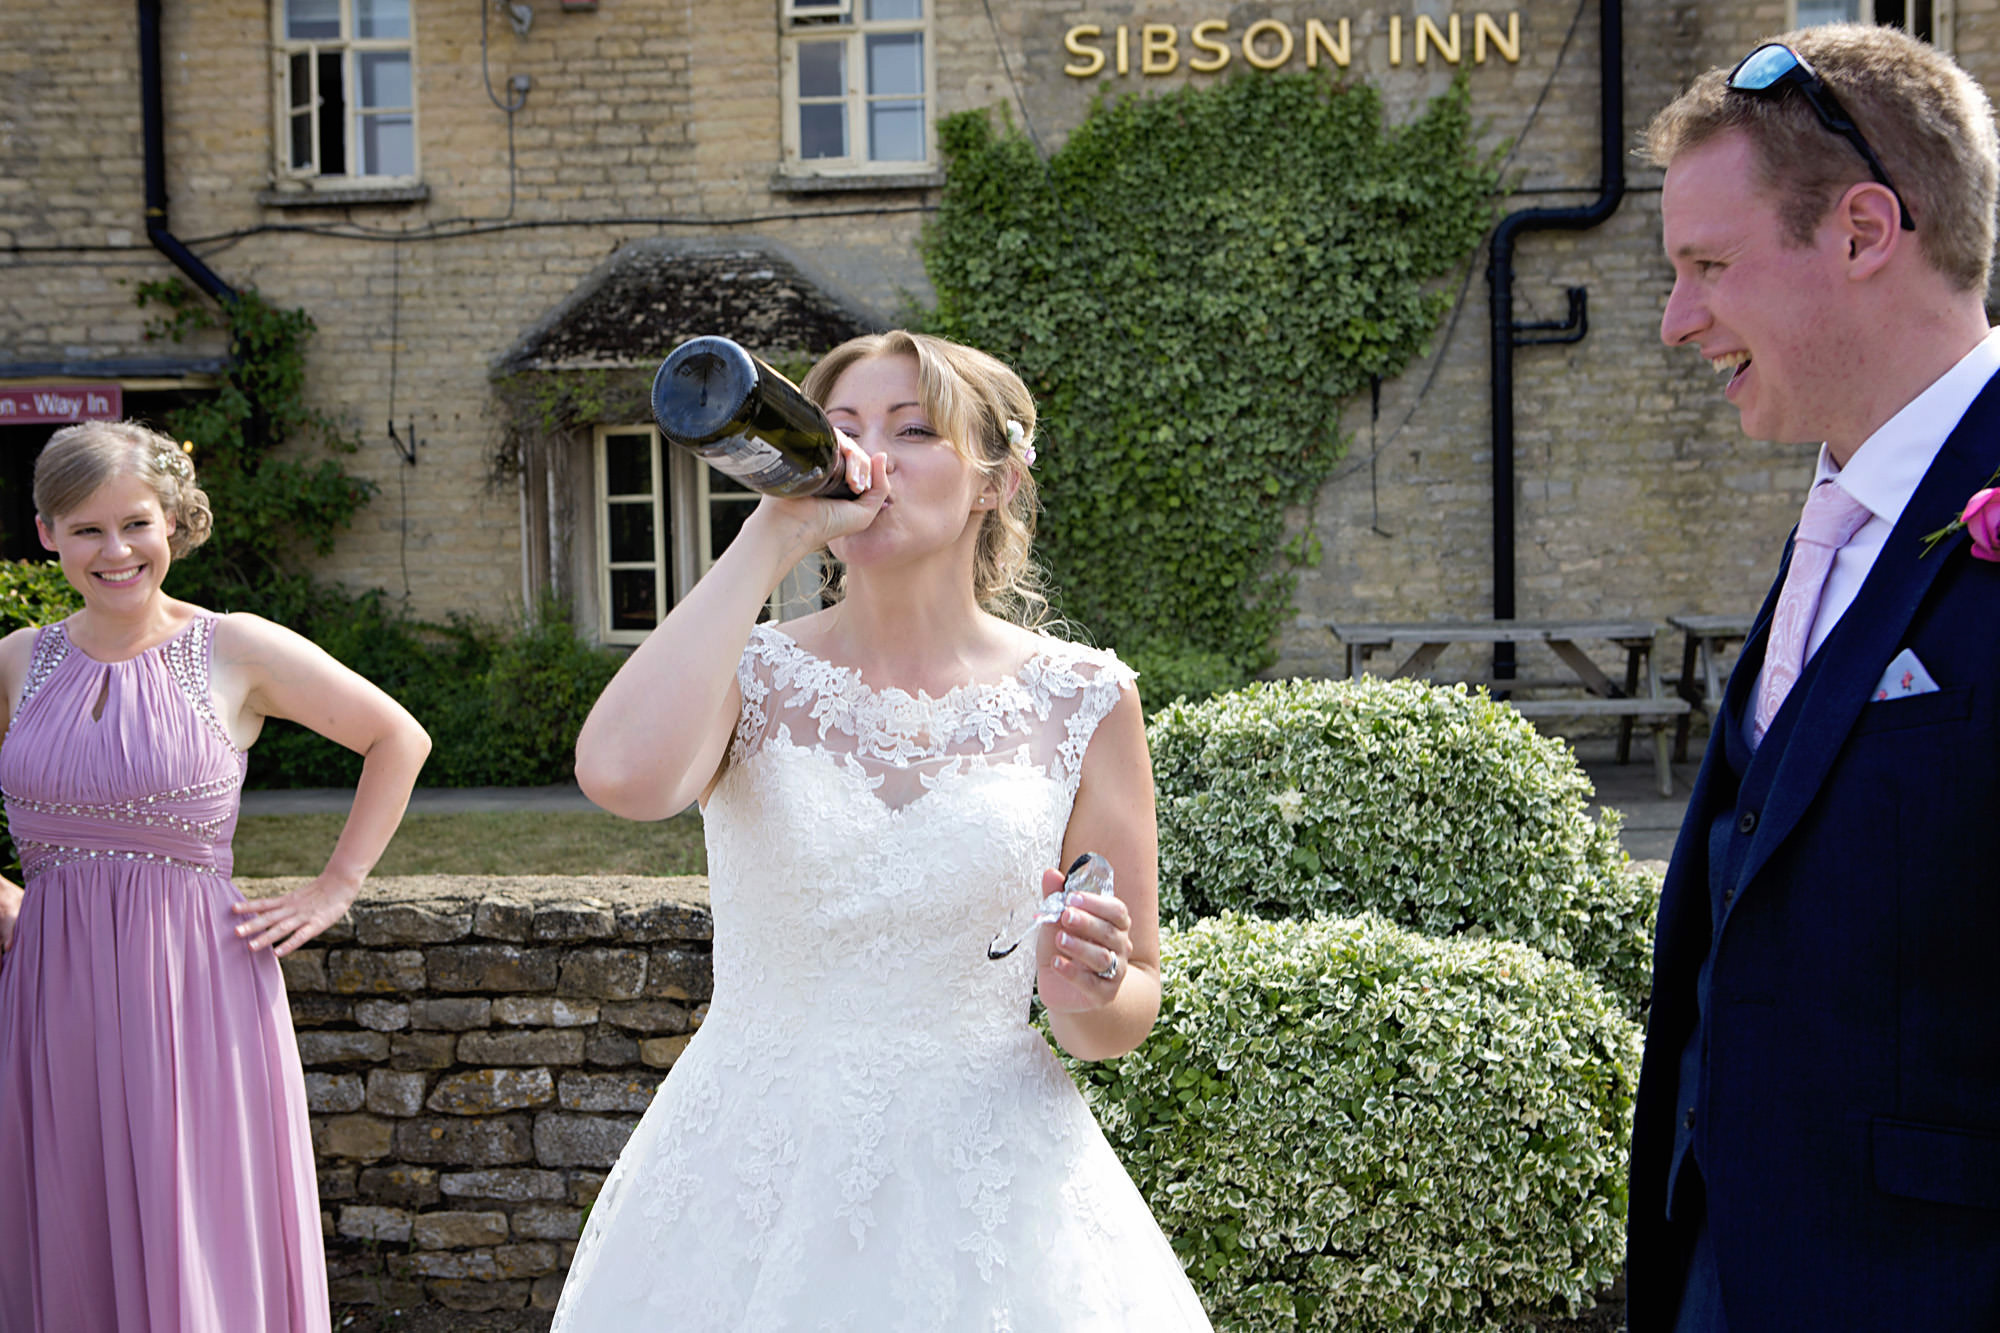 wedding-sibson-inn (32).jpg